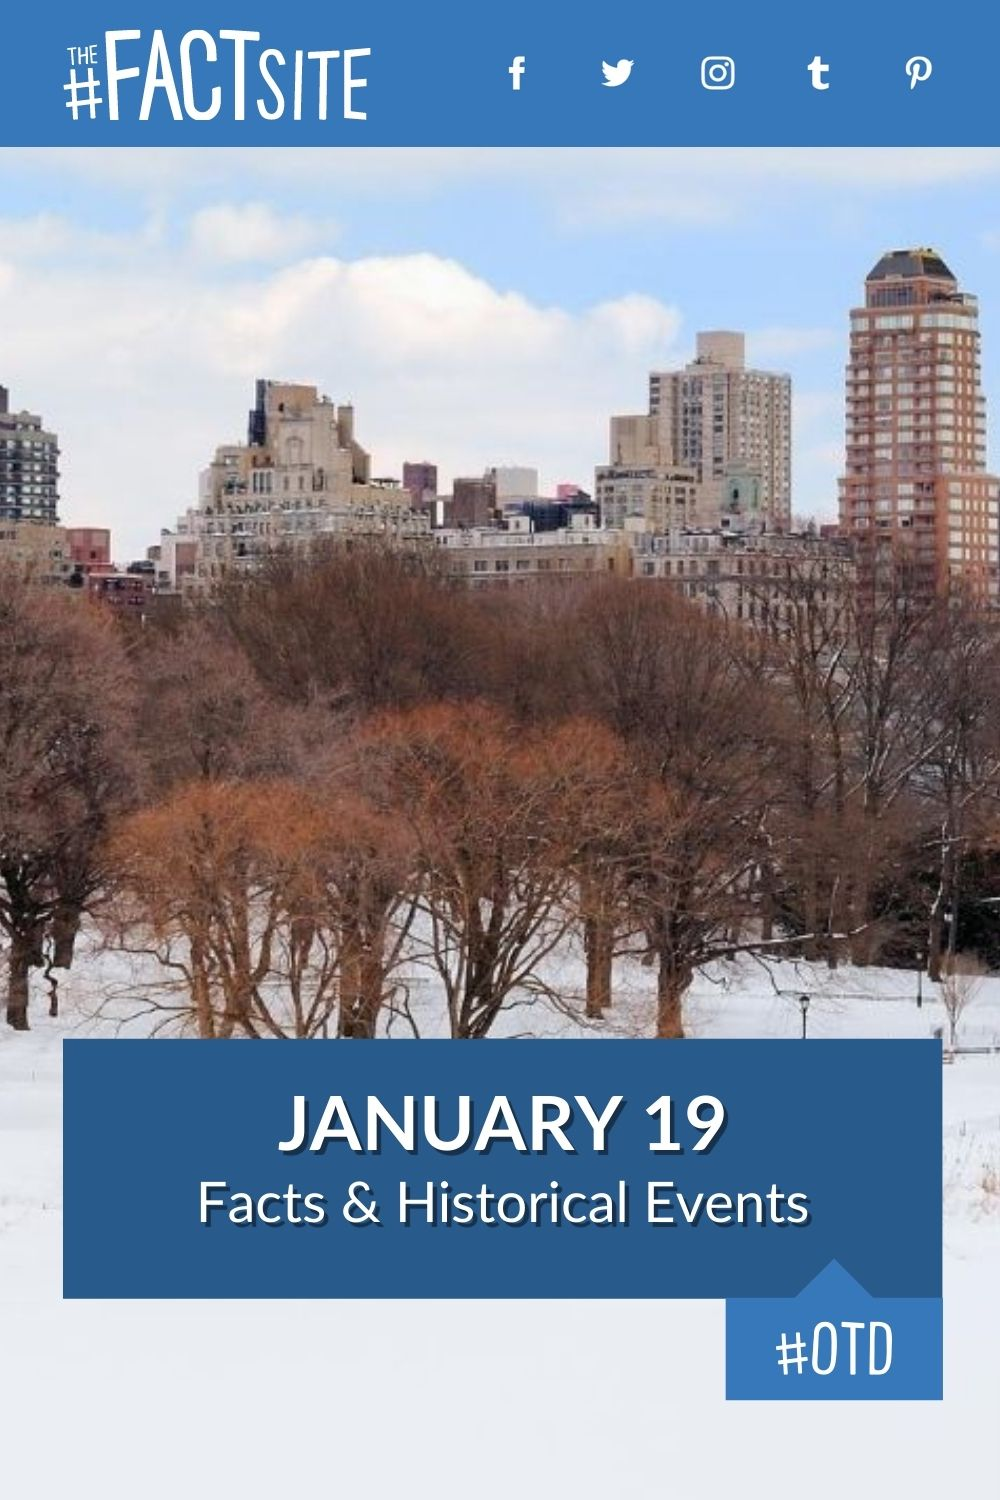 Facts & Historic Events That Happened on January 19